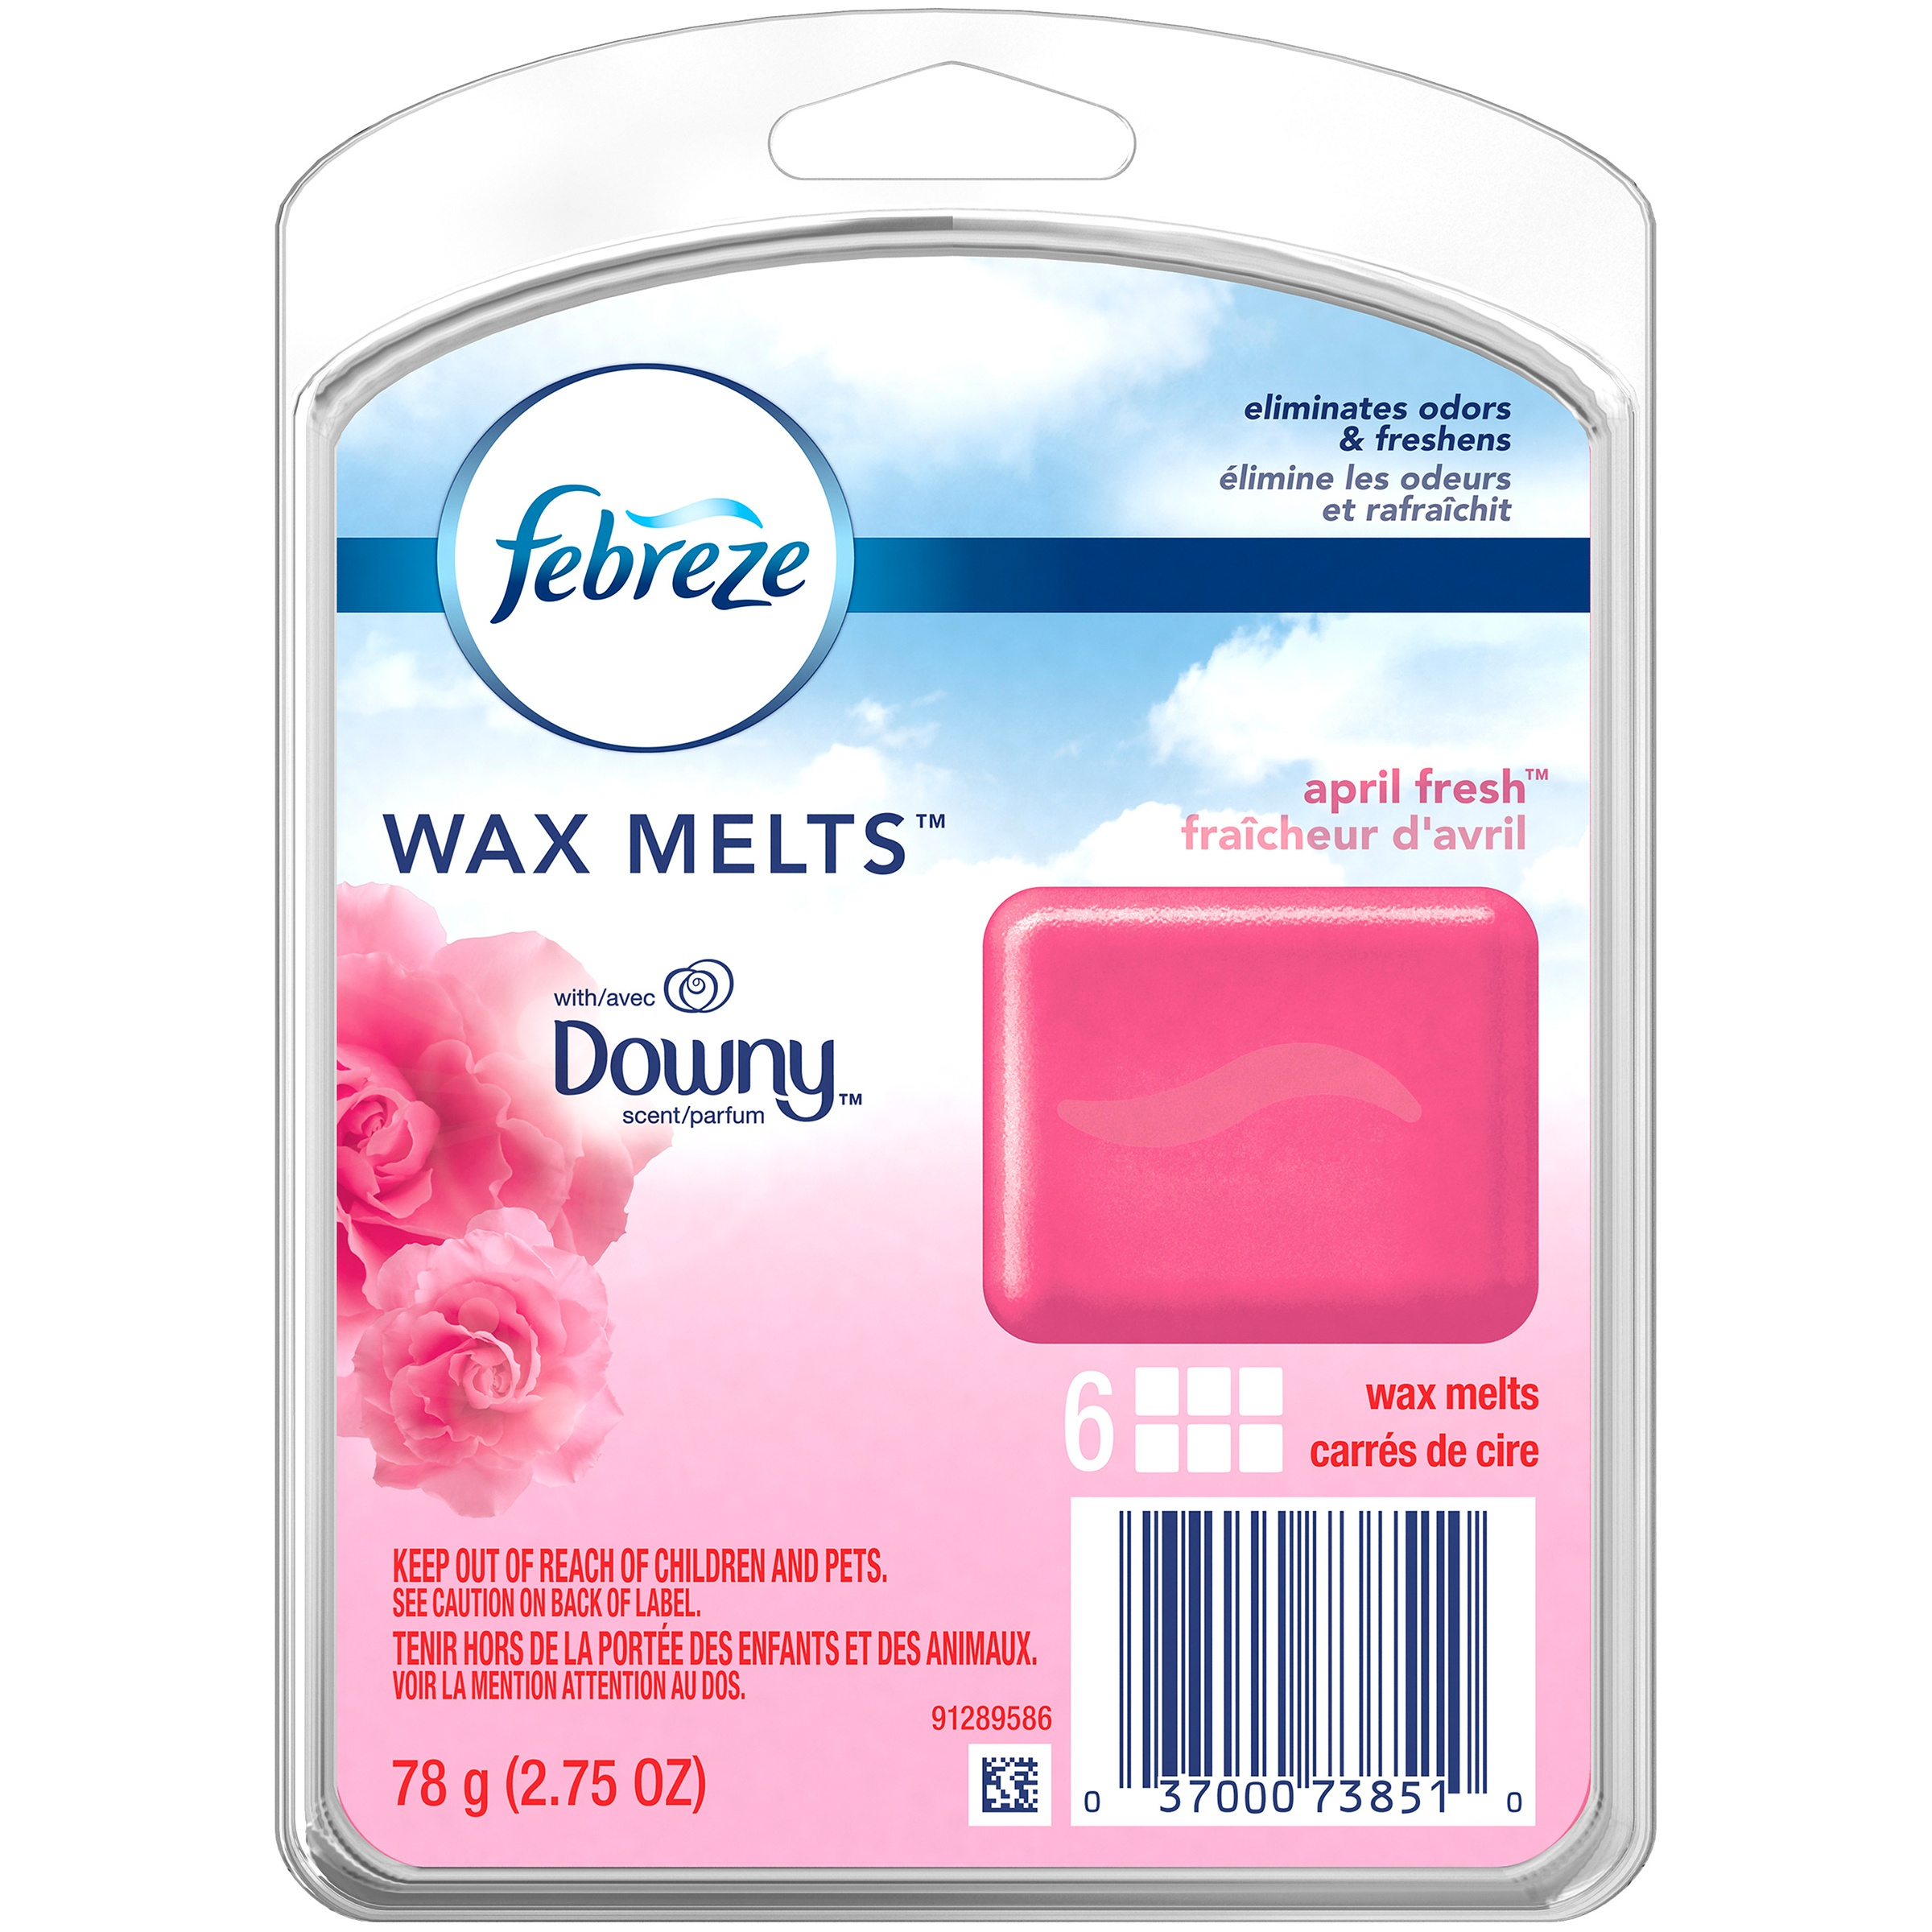 Febreze Wax Melts Air Freshener with Downy Scent, April Fresh, 6 wax melts, 2.75 oz